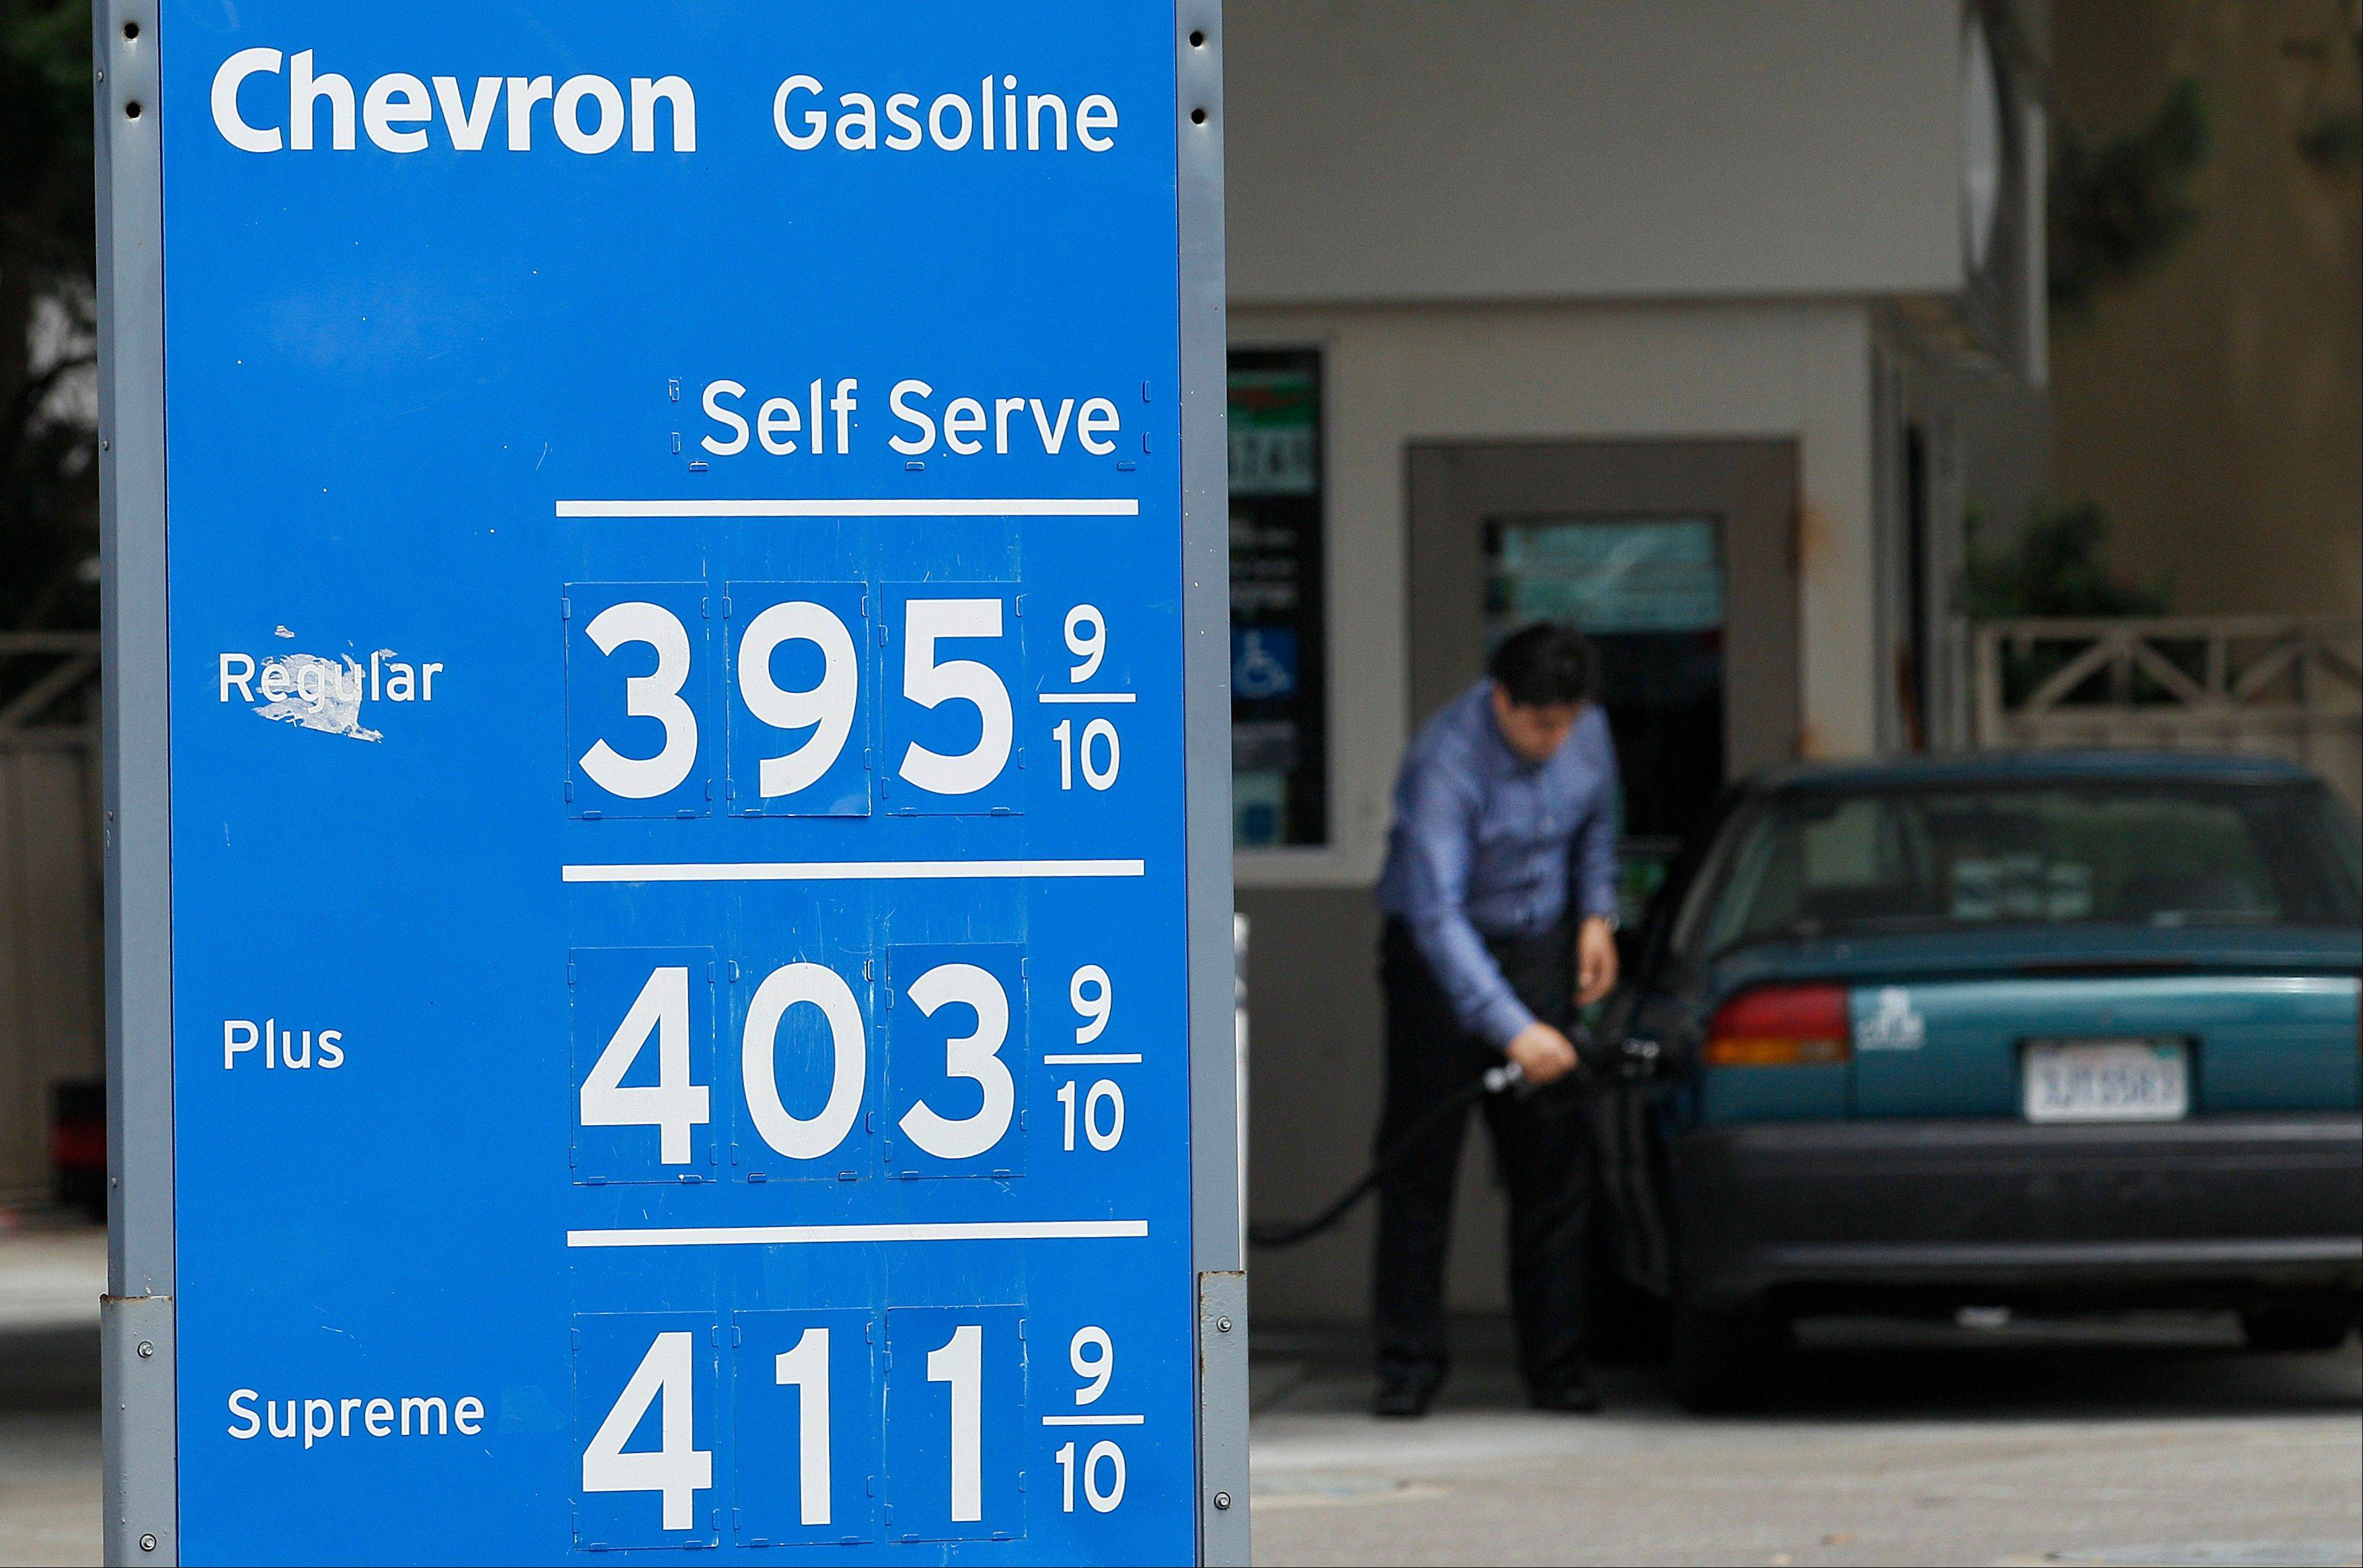 The average price of regular gasoline jumped in California from $3.86 a gallon on Tuesday to $3.94 on Thursday, according to the website GasBuddy.com.